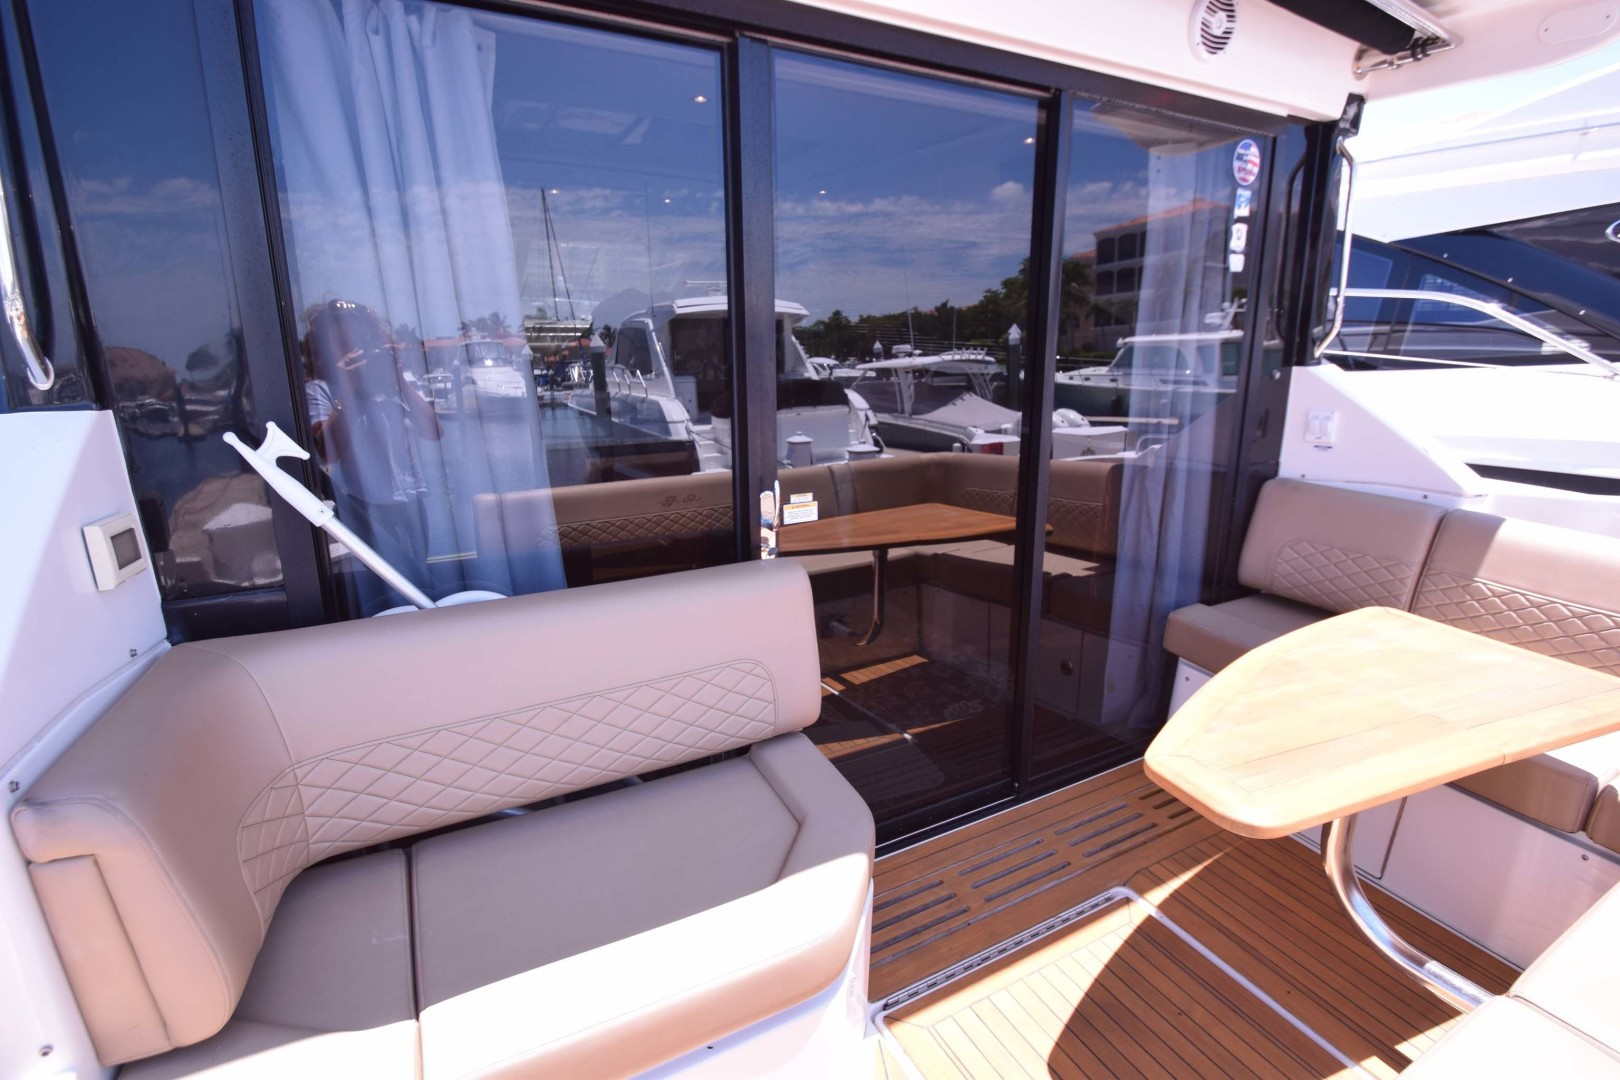 Sea Ray-460 Sundancer 2017-Susanne Marie 4 Fort Myers-Florida-United States-View Towards Sliding Glass Doors Aft Deck-1403759 | Thumbnail